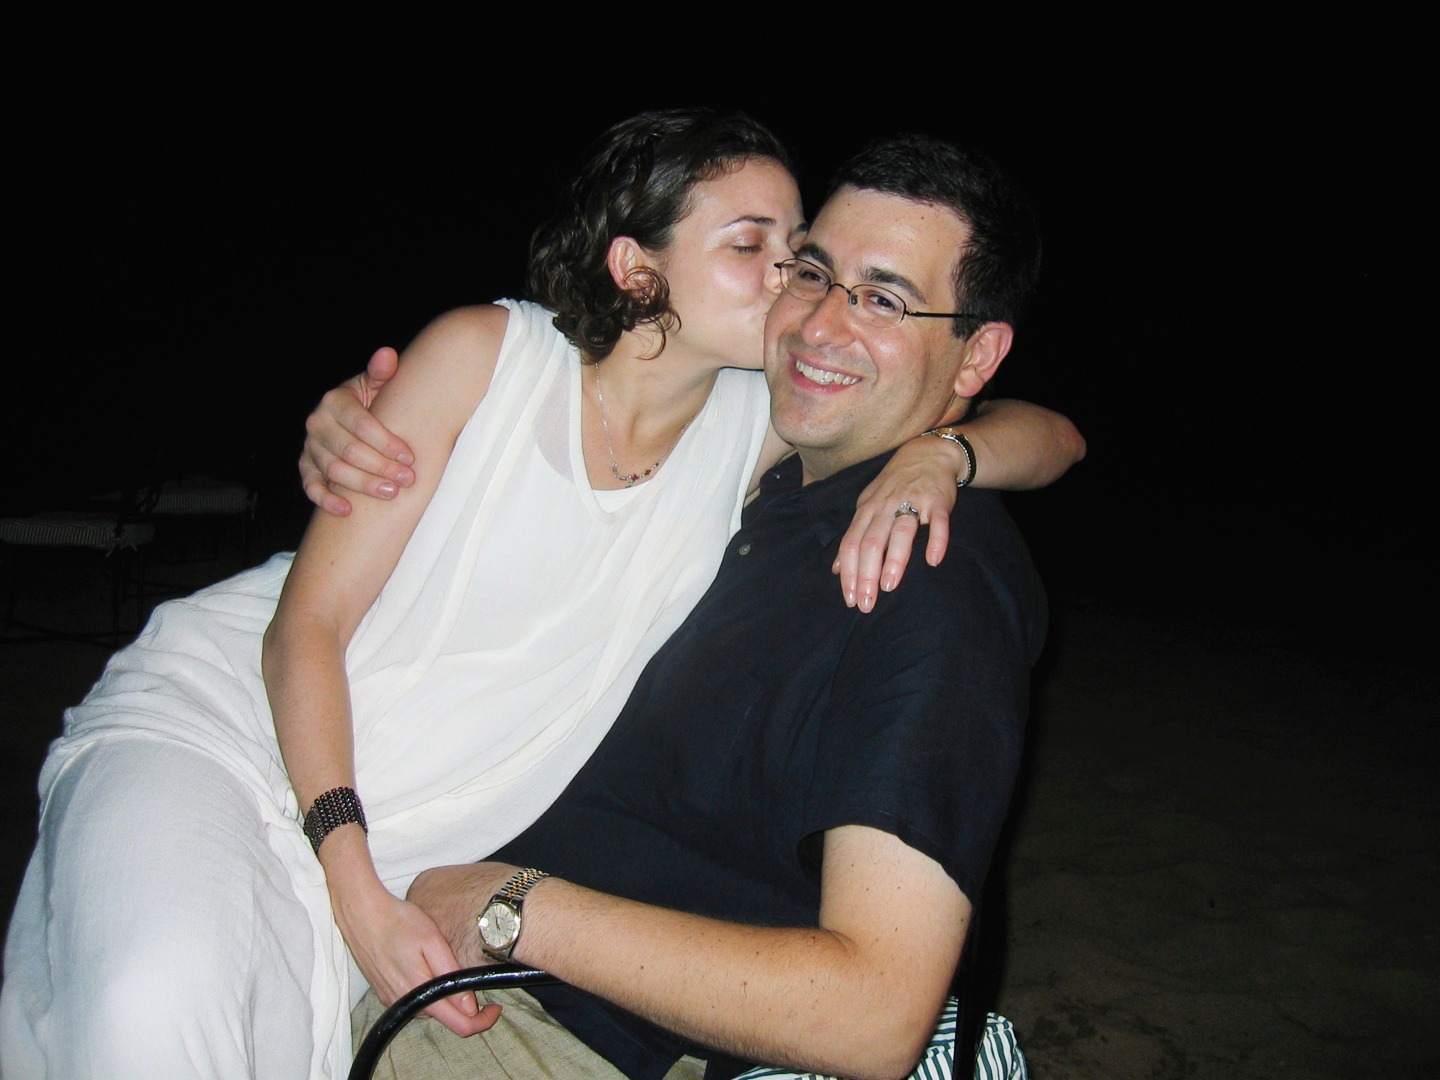 Sandberg and her husband Goldberg at his brother Rob's rehearsal dinner in Mexico in 2003